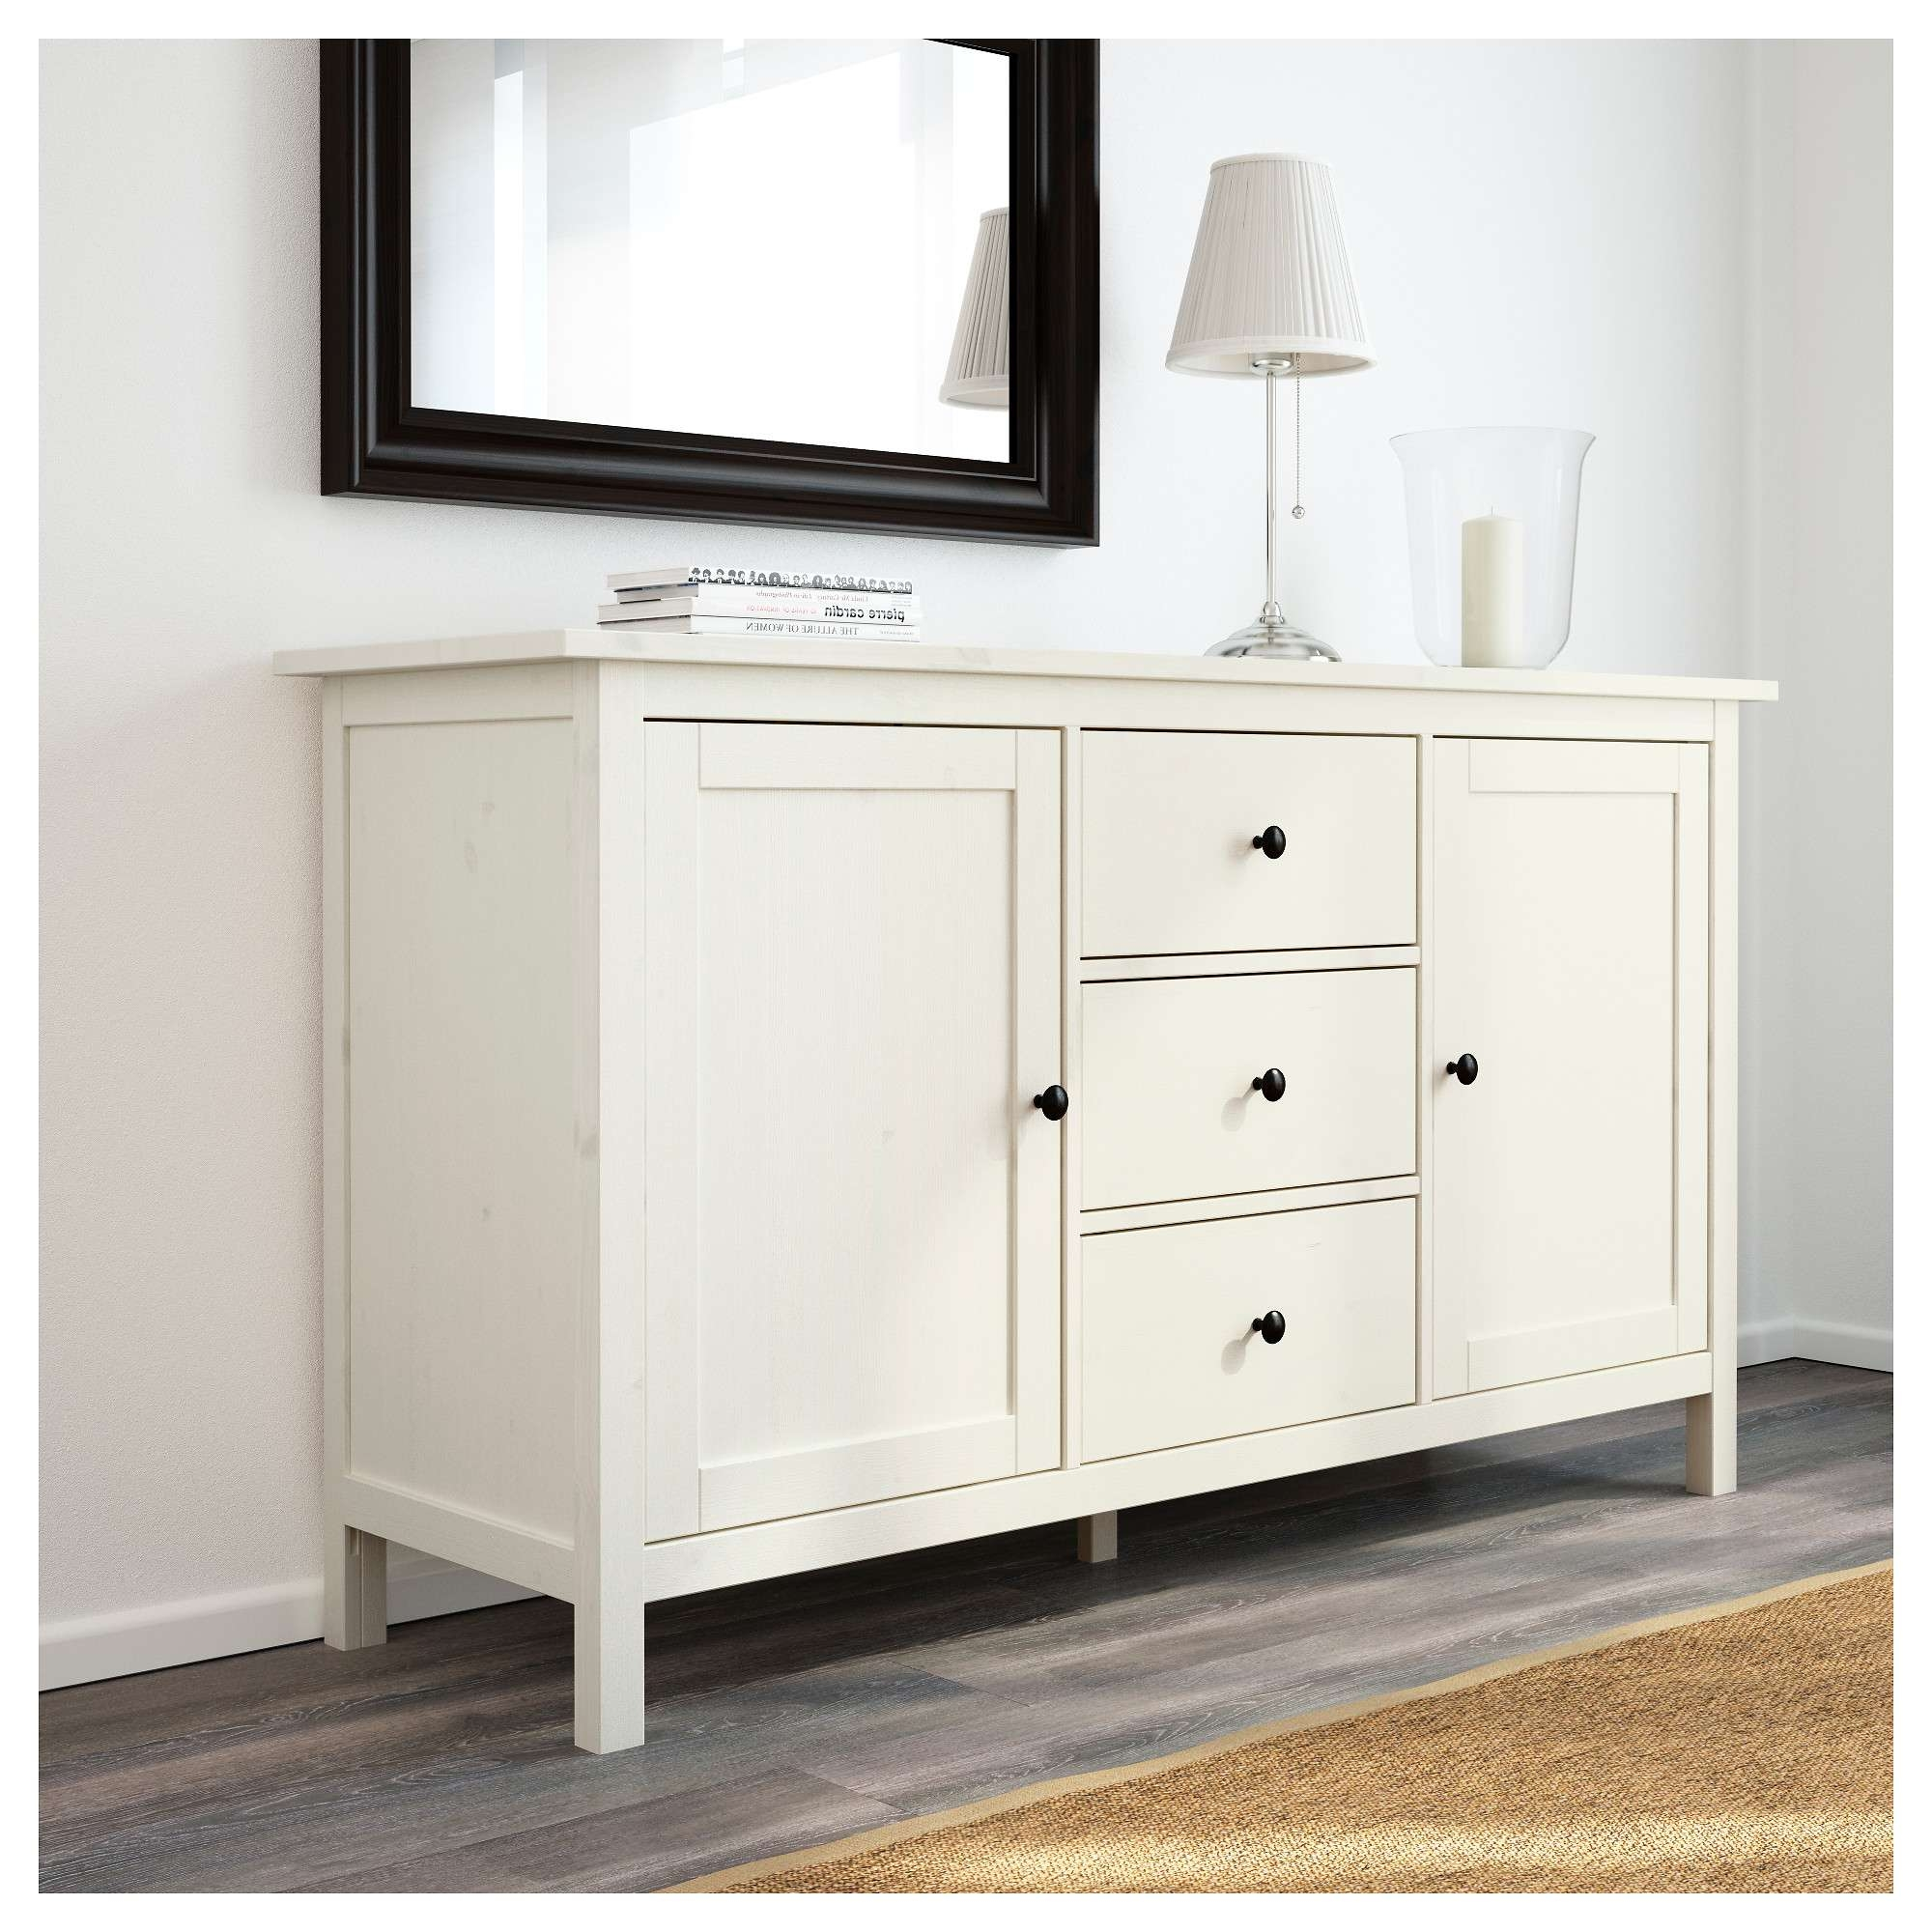 Hemnes Sideboard White Stain 157X88 Cm – Ikea Pertaining To White Wood Sideboards (View 7 of 20)